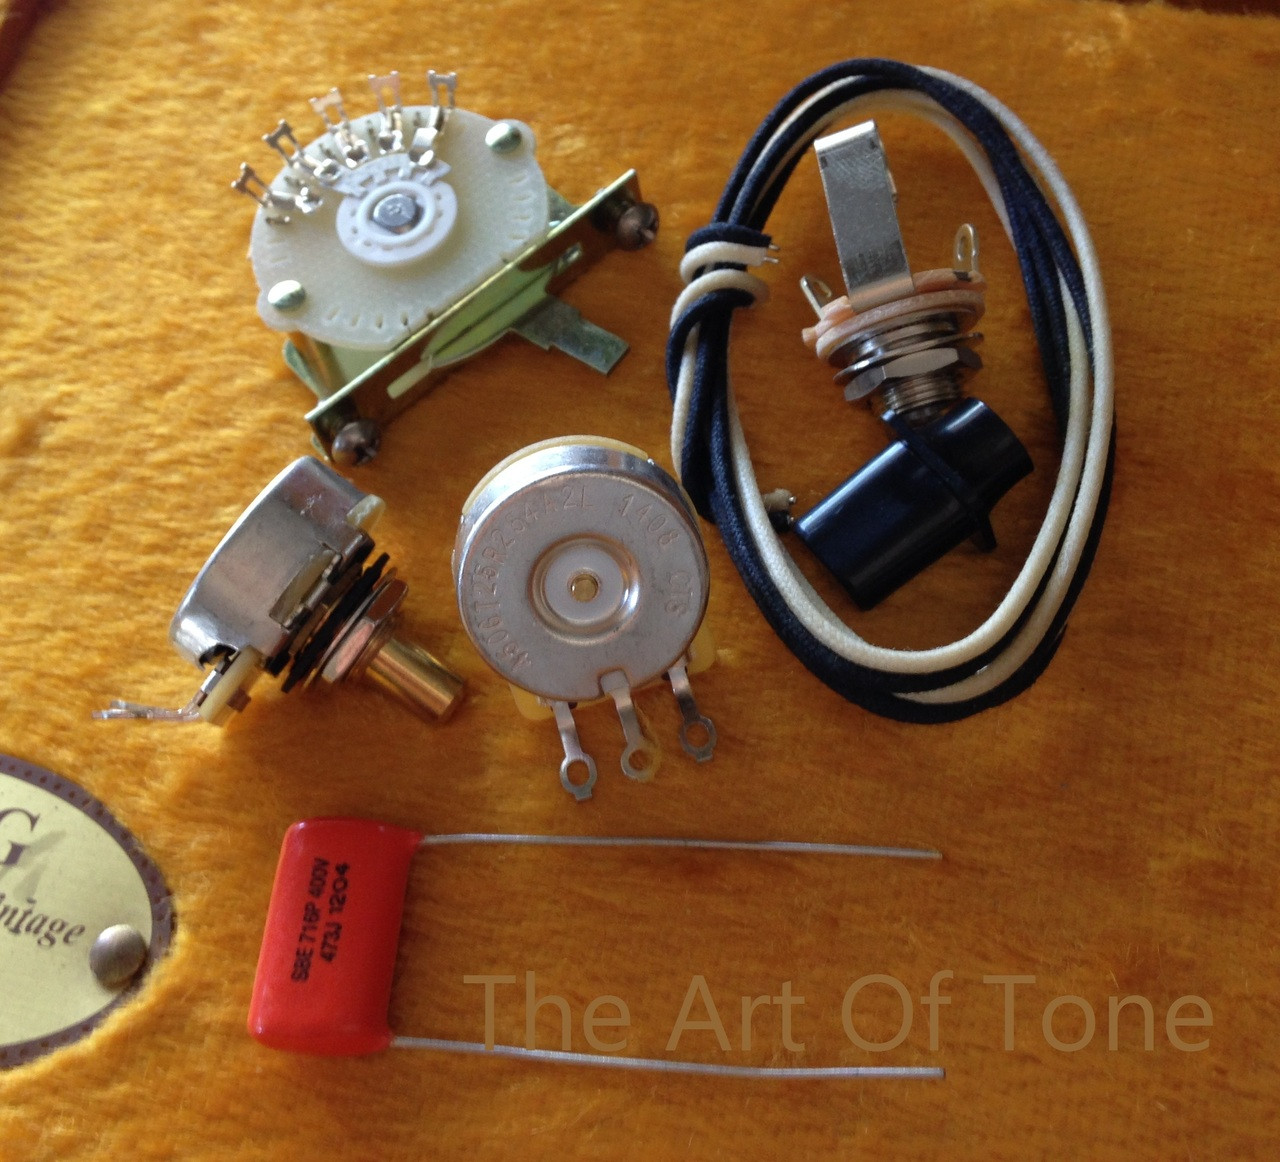 Basic Wiring Kit for Telecaster Guitars